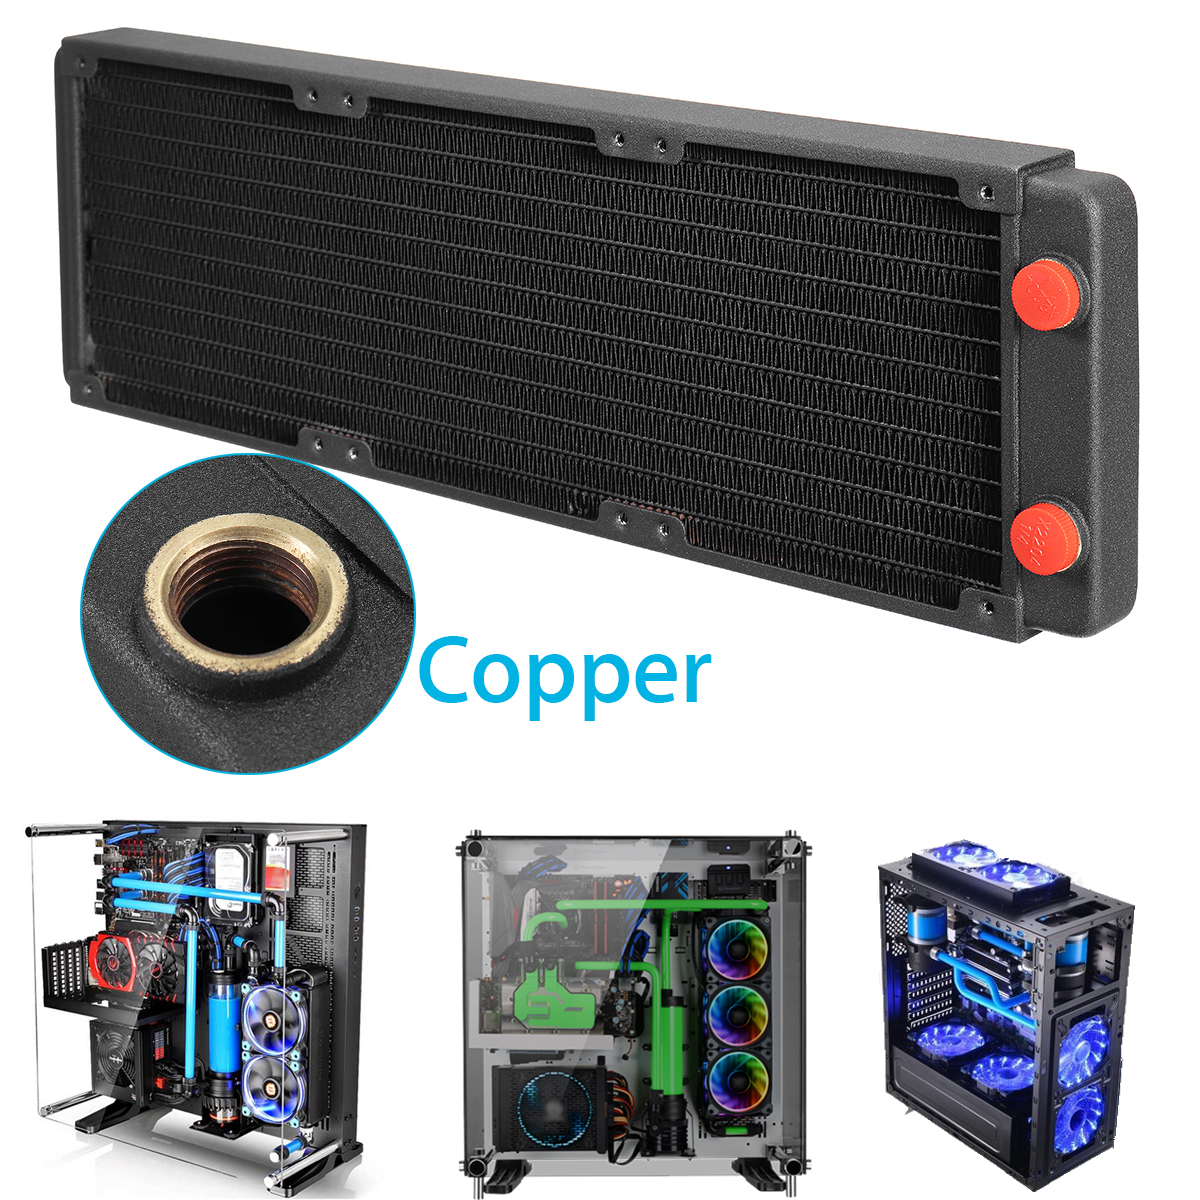 все цены на LEORY 360mm Copper Computer PC Radiator Cooler Tools 2.5cm/1'' Water Cooling Cooler Heat Sink Heat Exchanger Cooler for CPU GPU